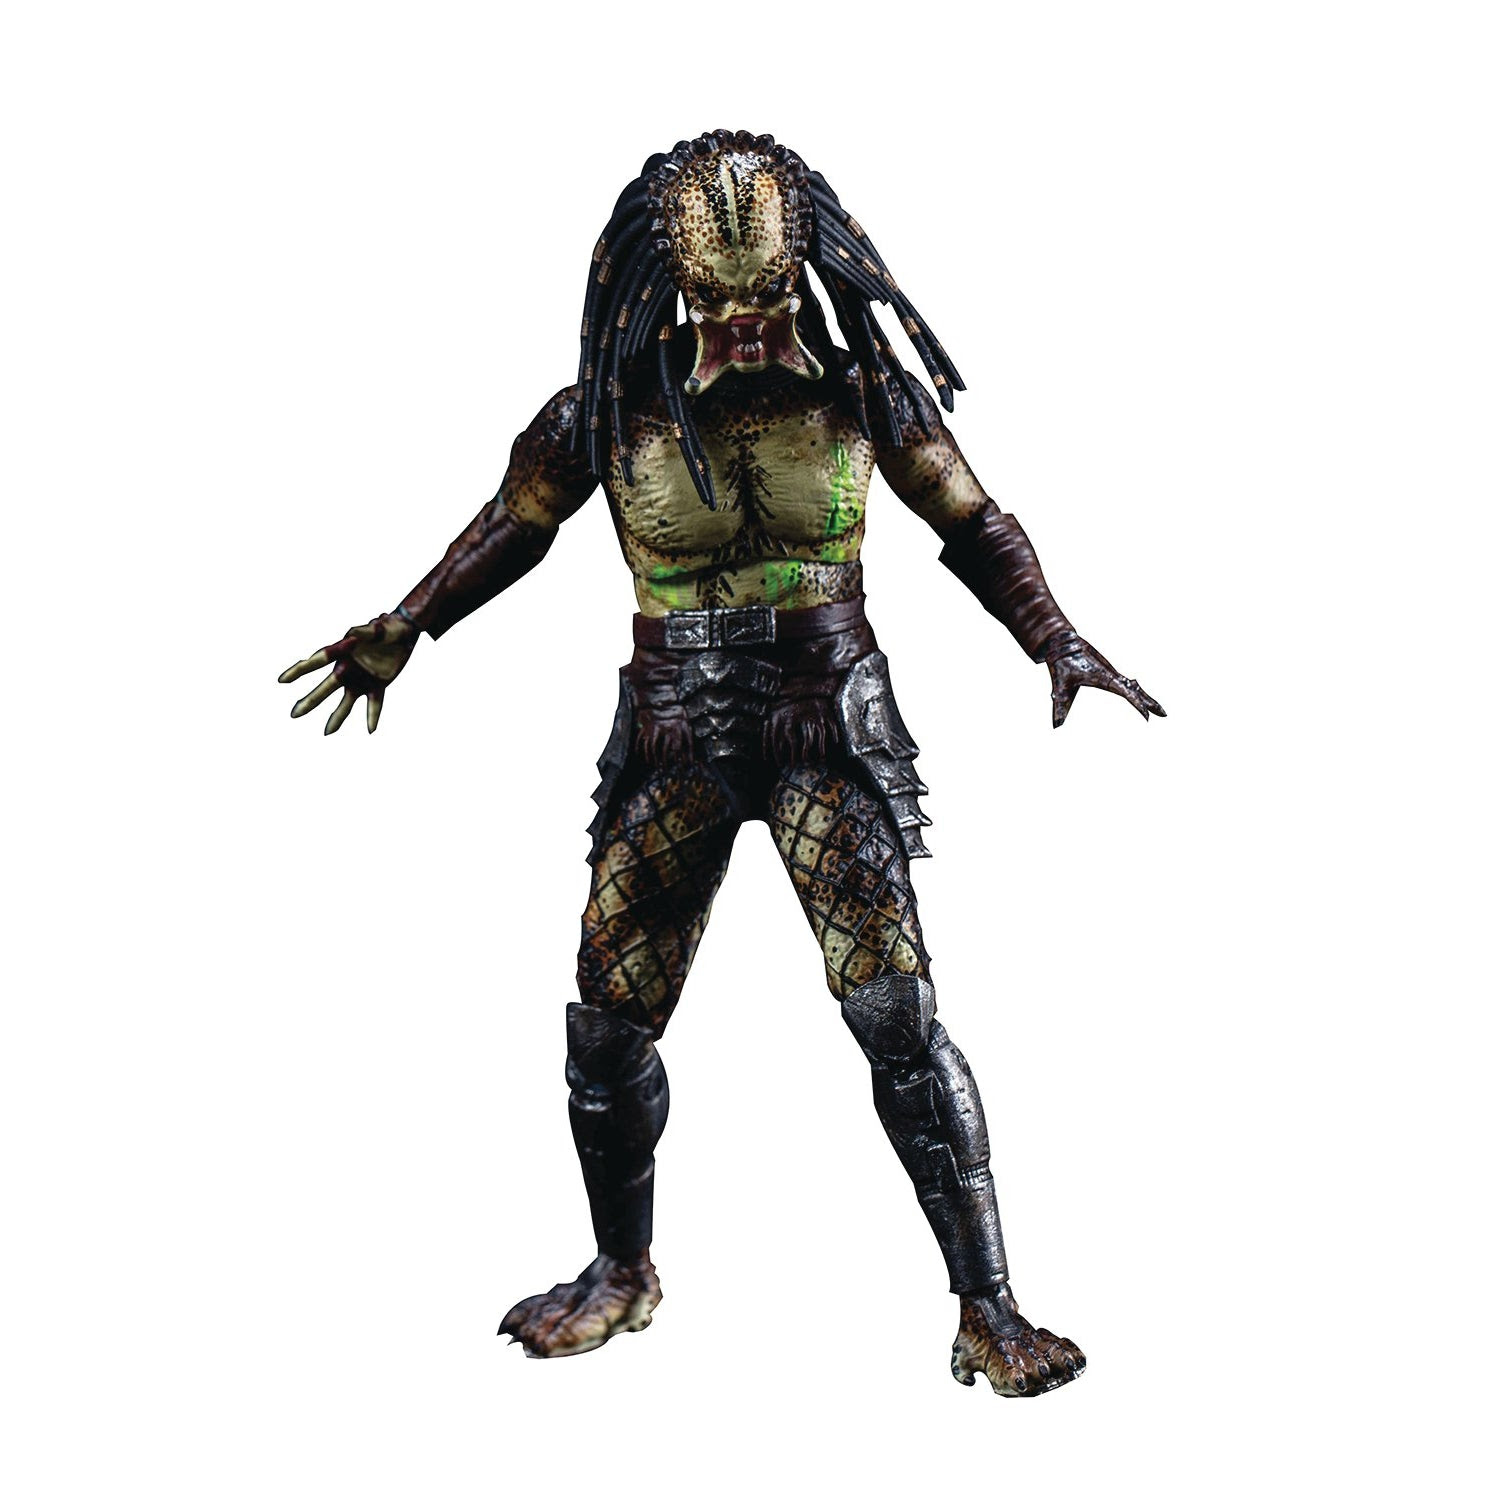 Image of The Crucified Predator Previews Exclusive Figure - NOVEMBER 2020